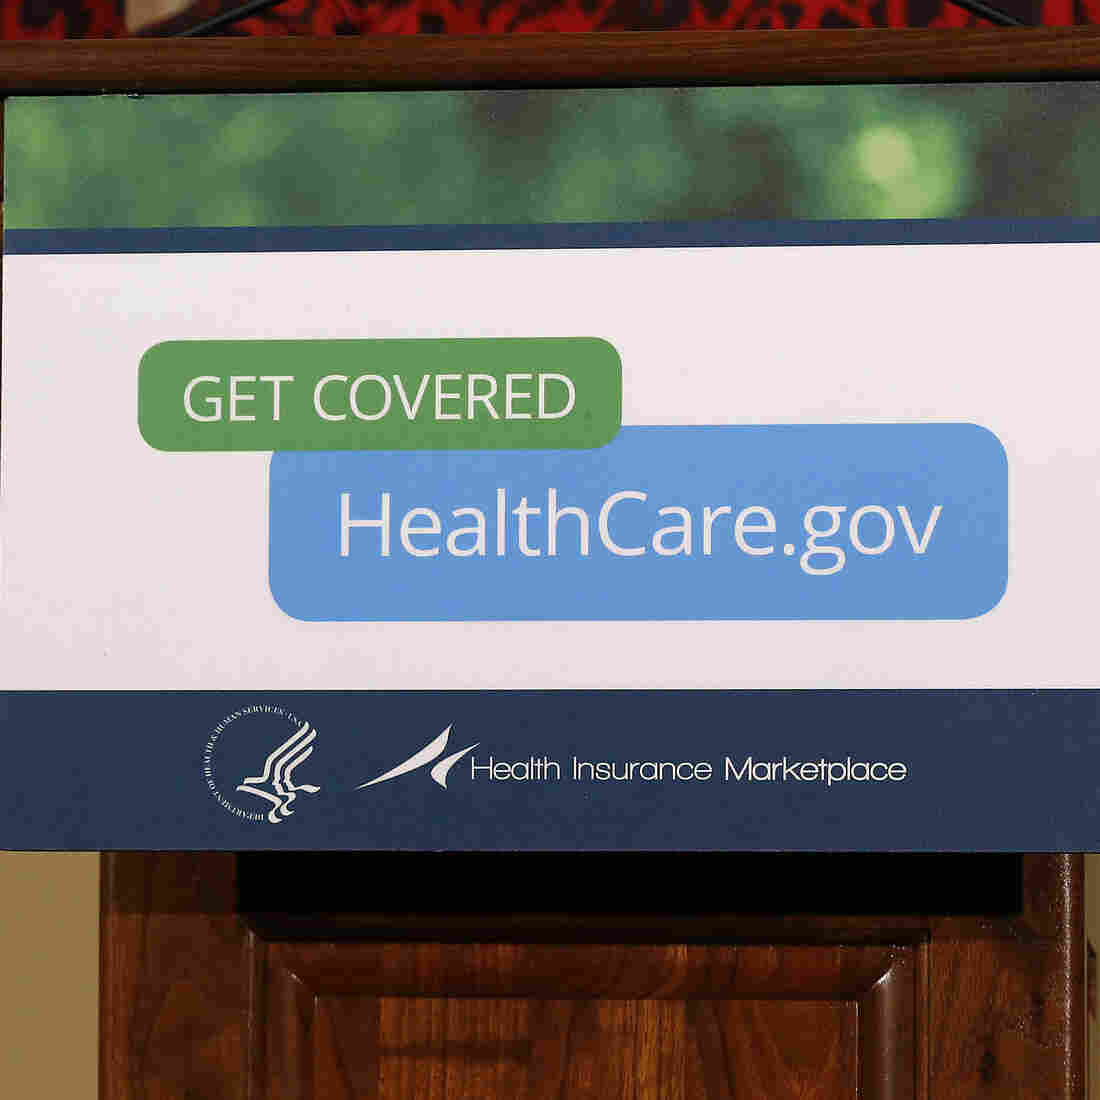 In simple terms, what is Obama's healthcare plan?